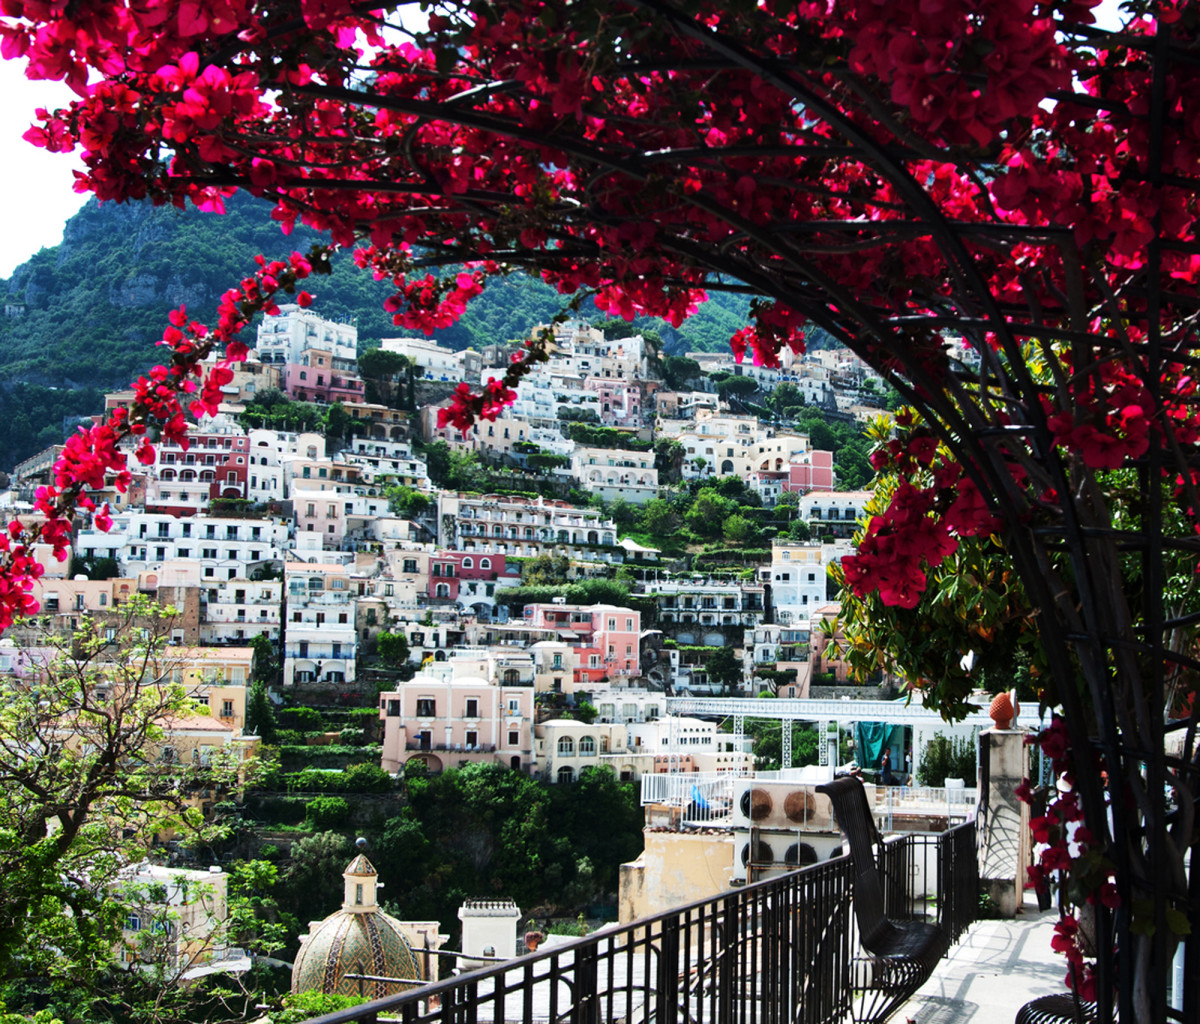 A view of Positano, Italy, where nature's beauty meets classical architecture.